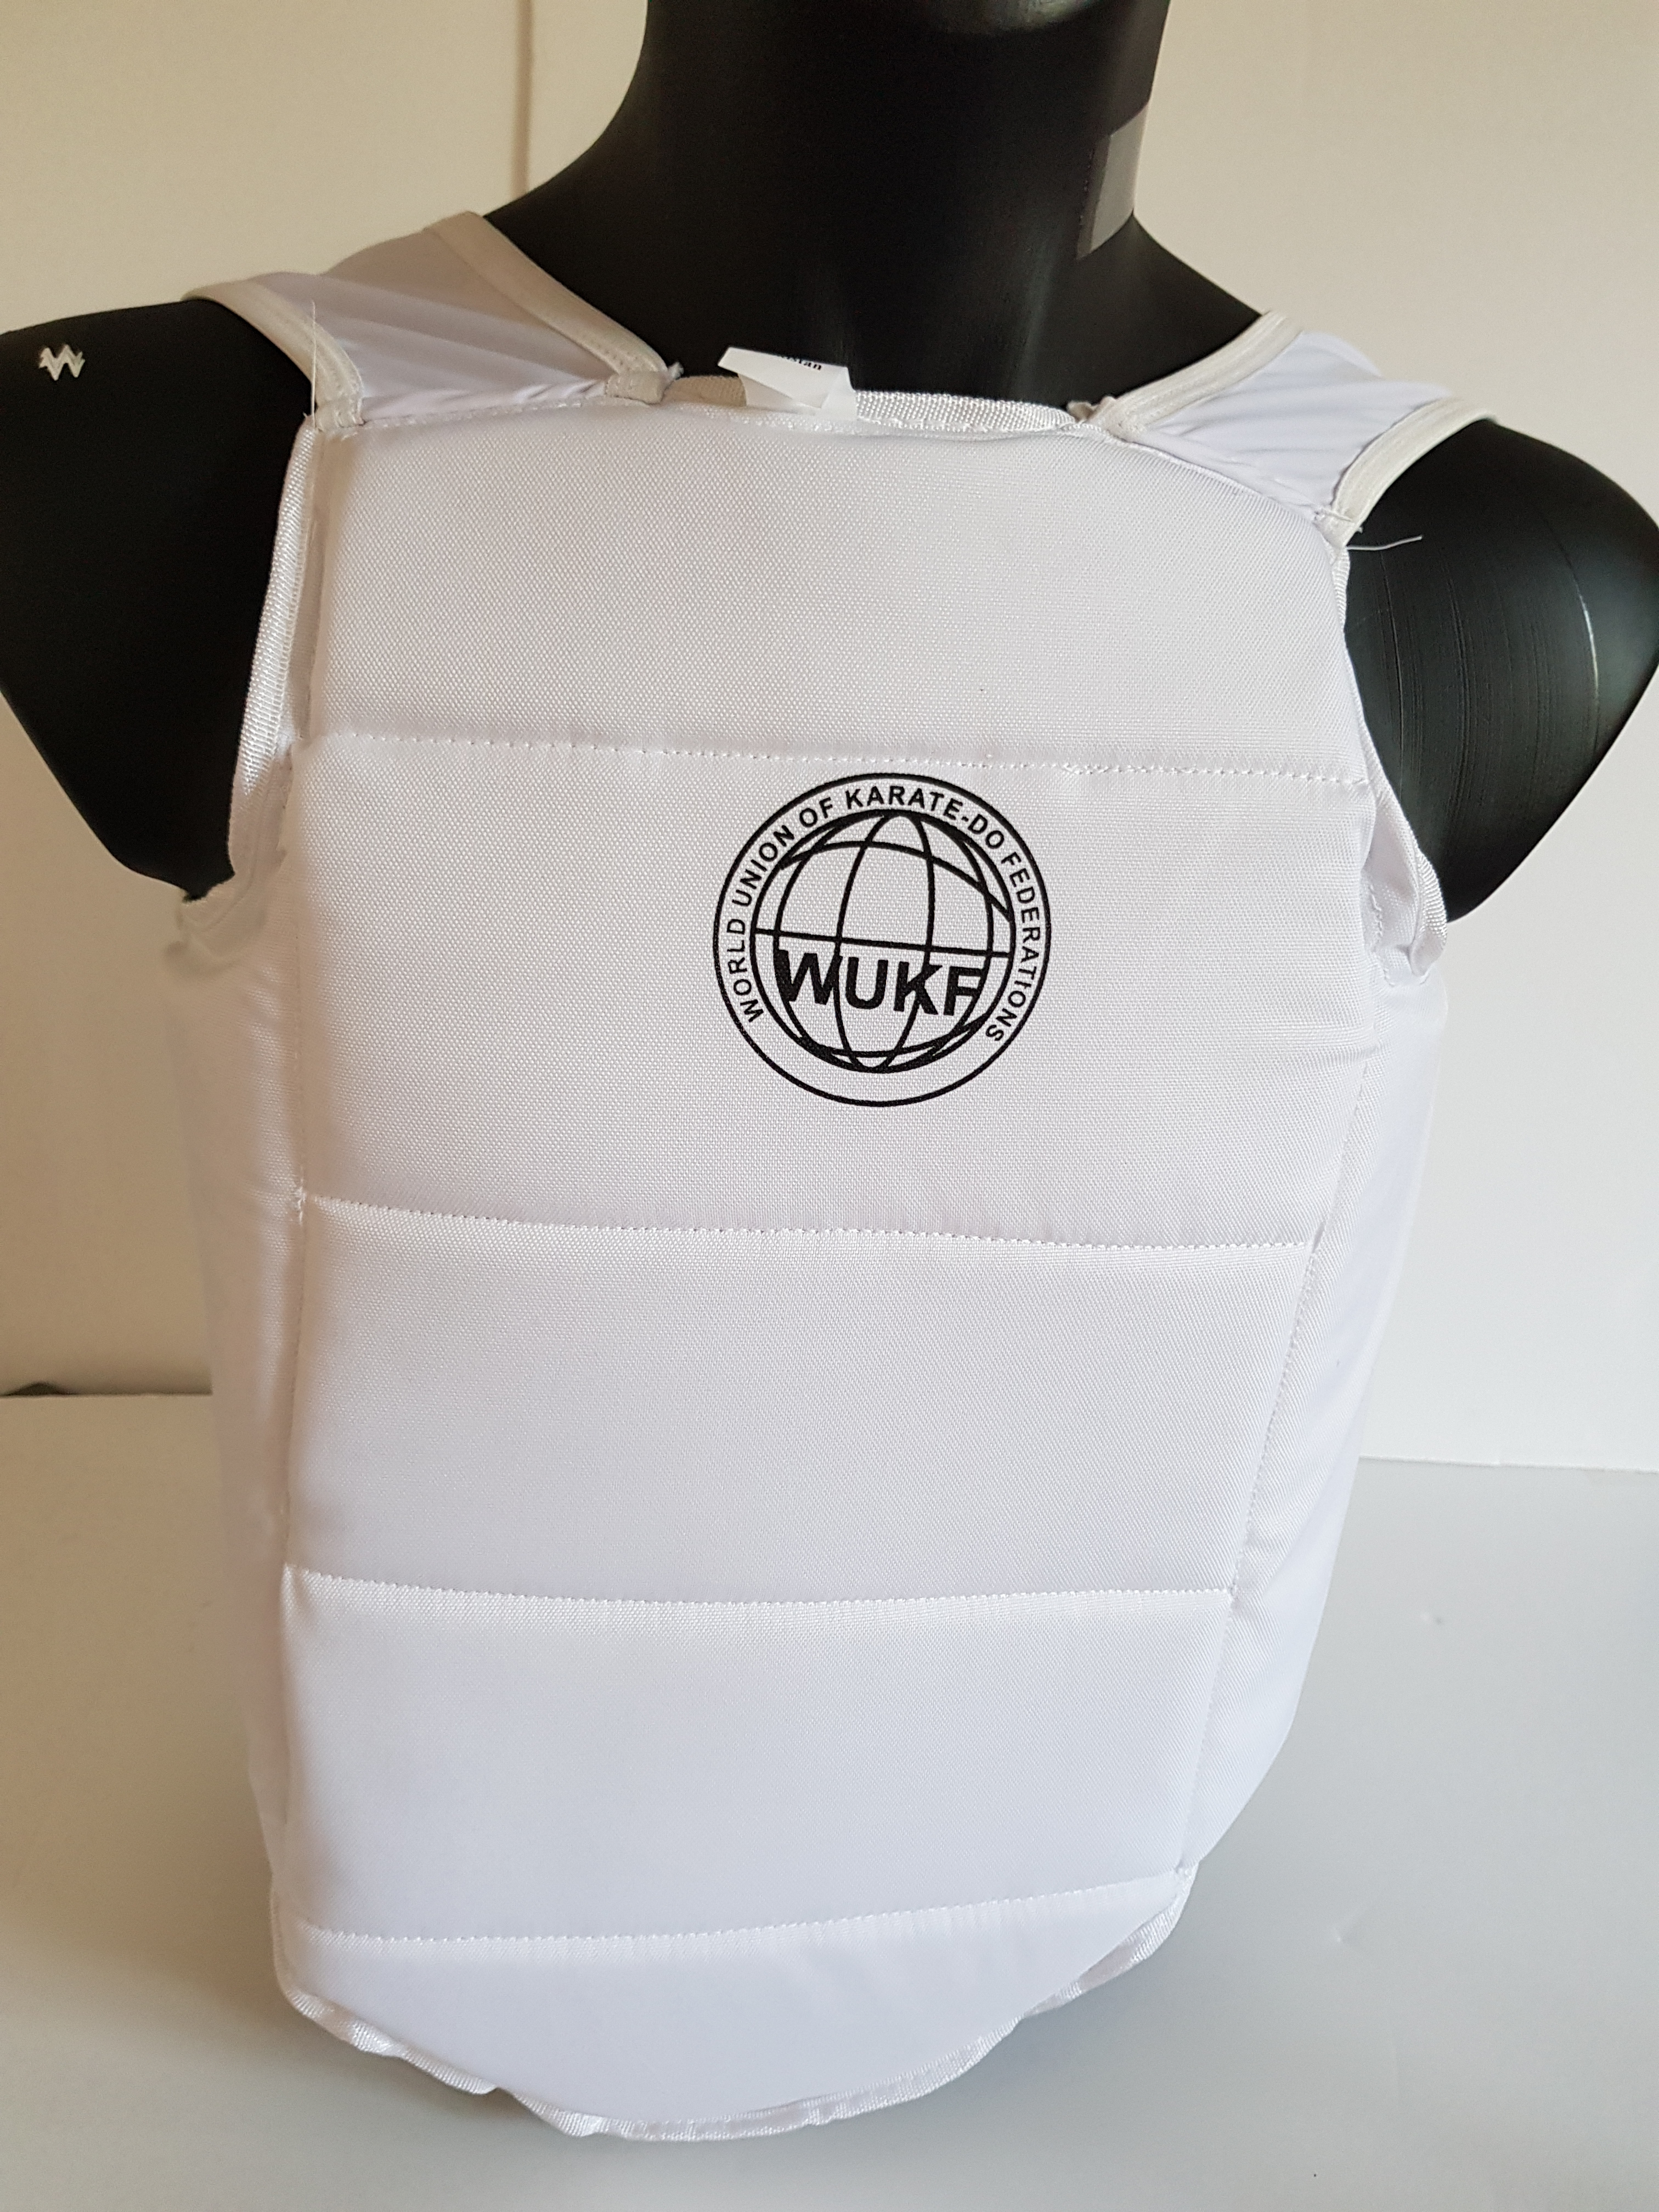 WUKF Approved Chest Guards